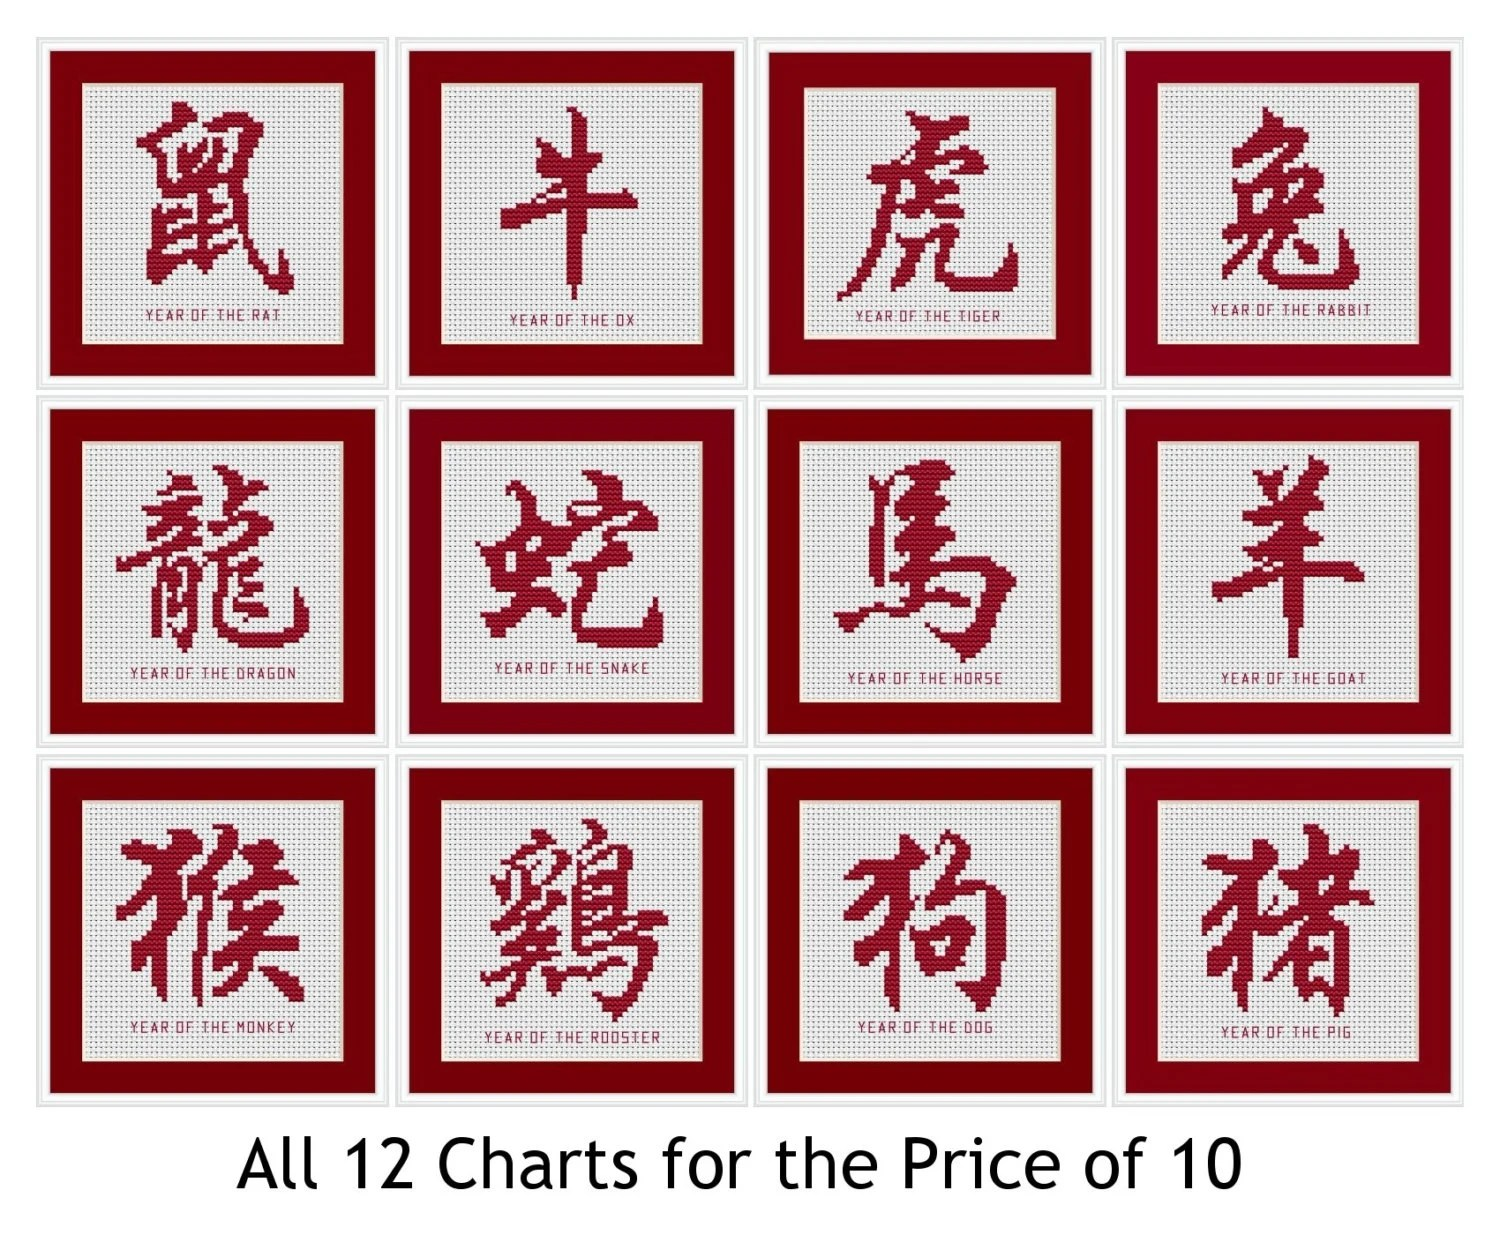 12 Chinese Zodiac Sign Cross Stitch Charts For 10